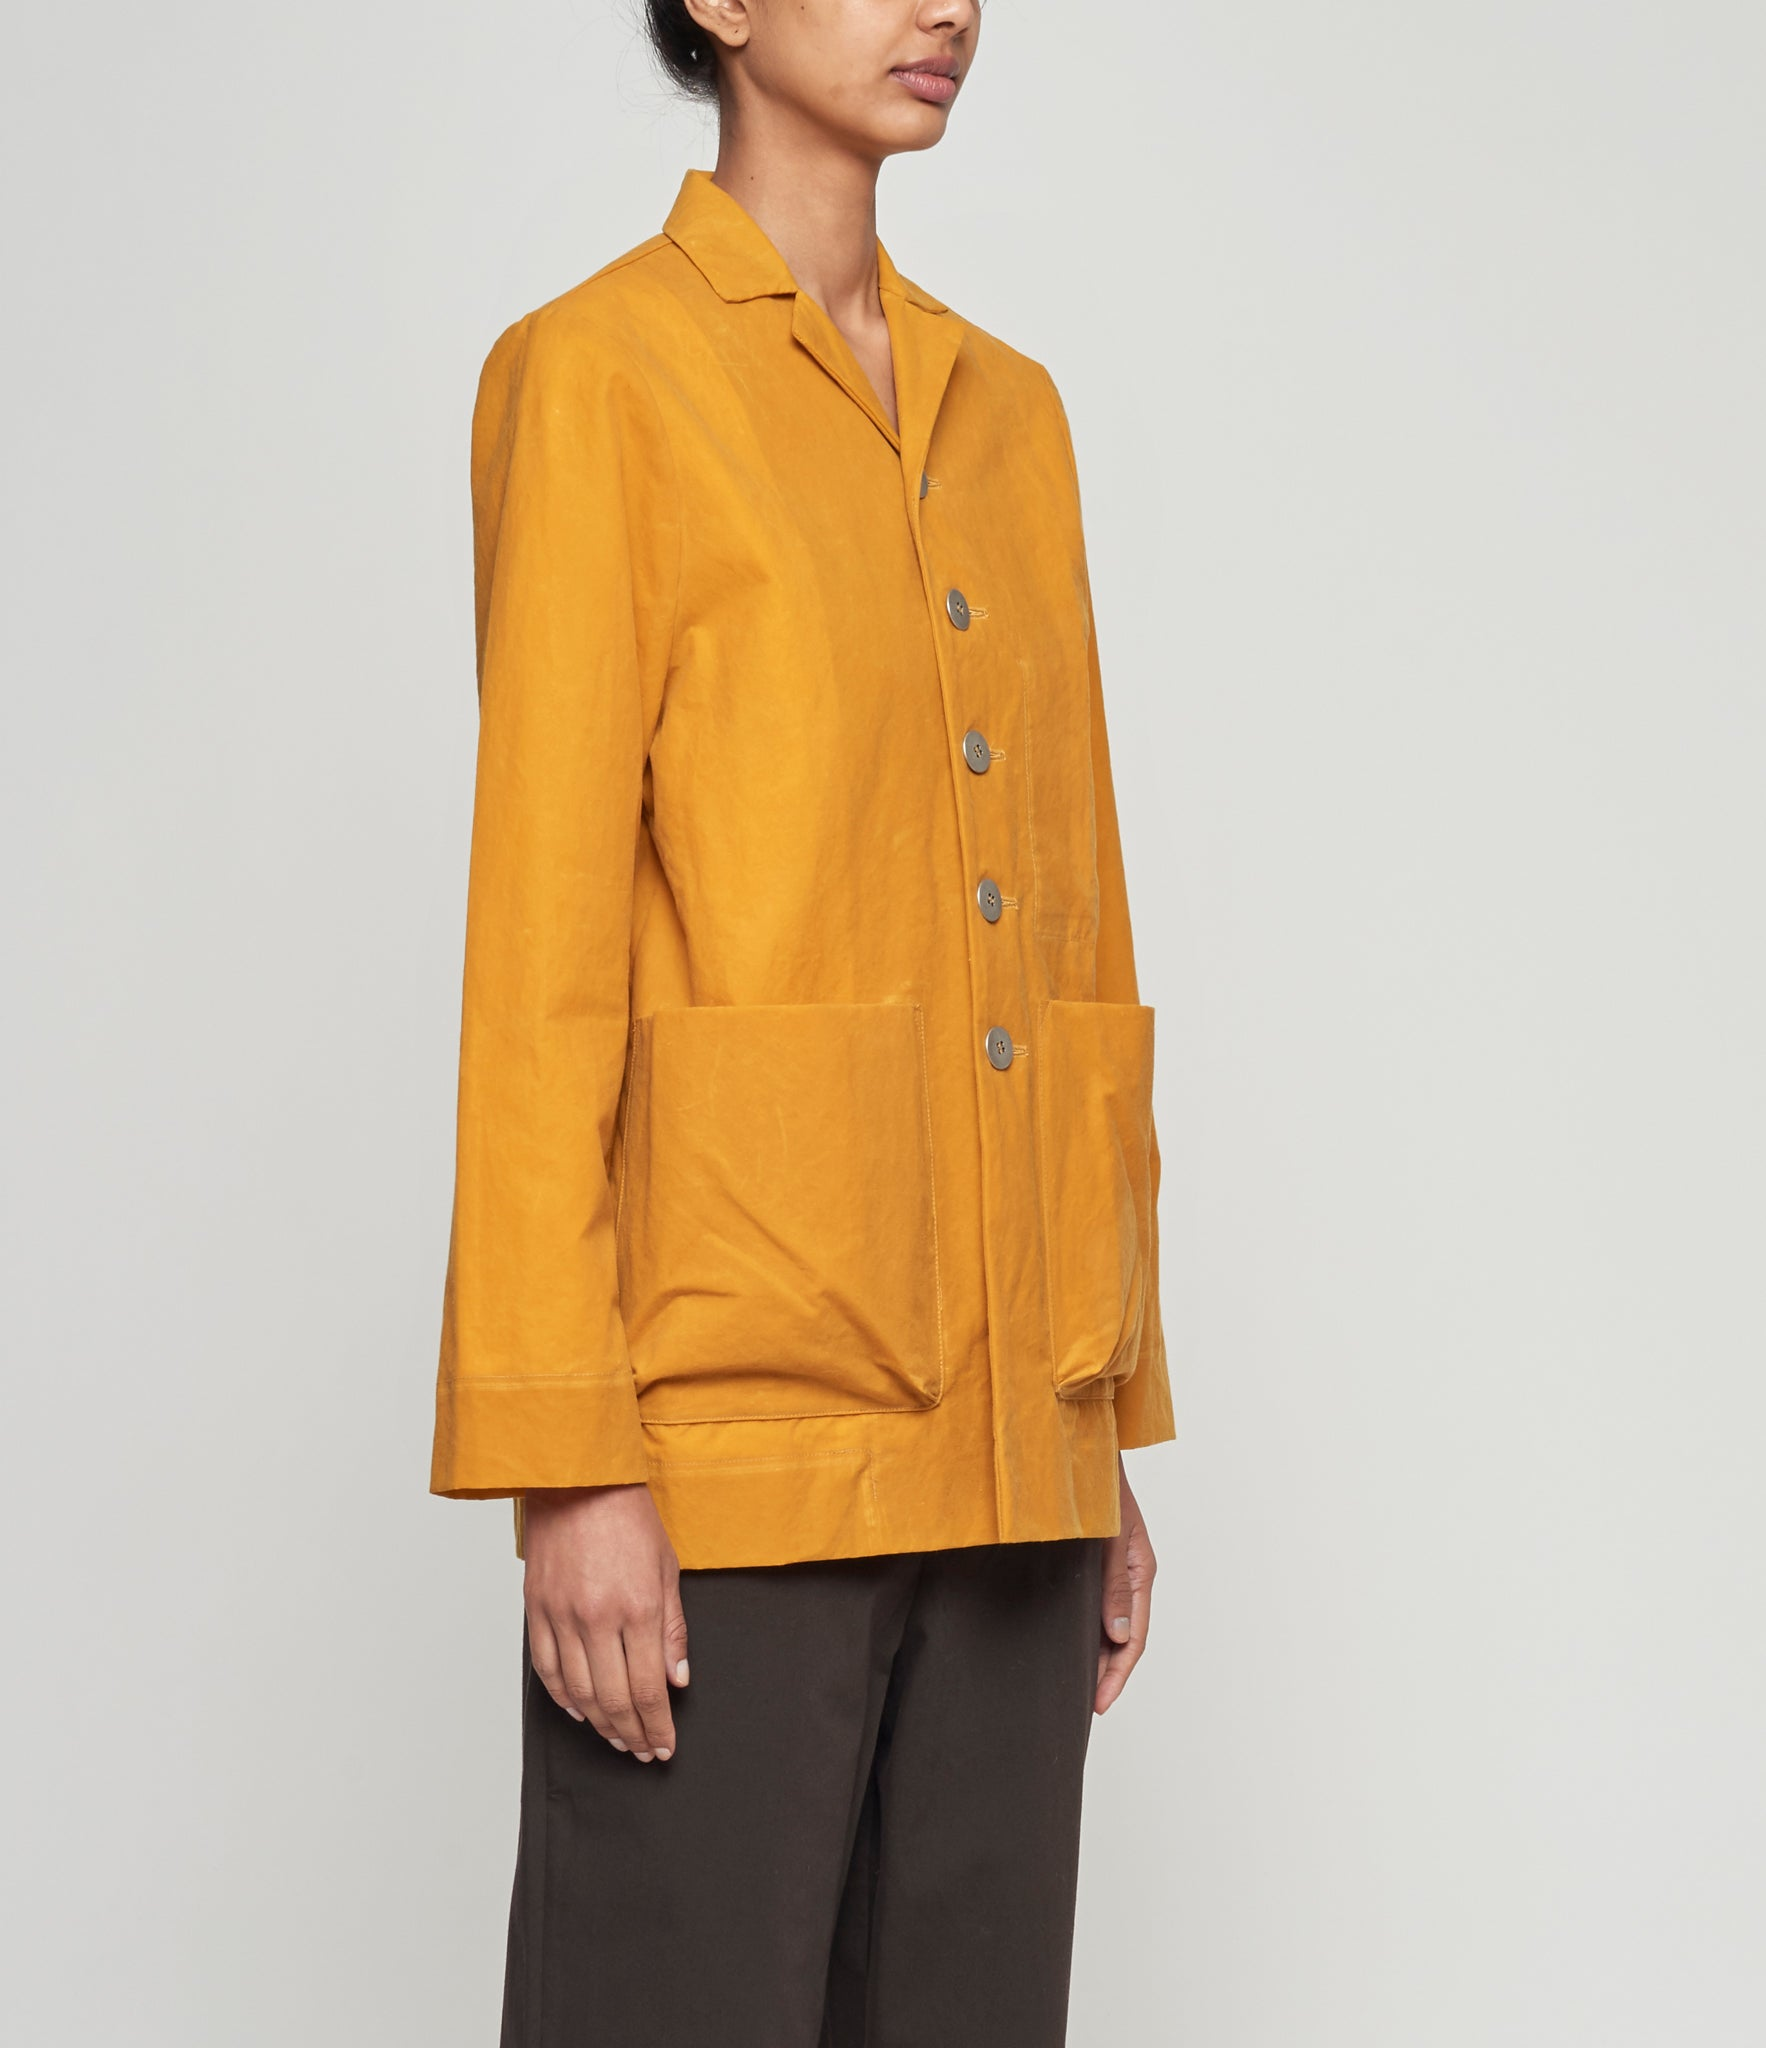 Toogood The Photographer Mustard Waxed Jacket